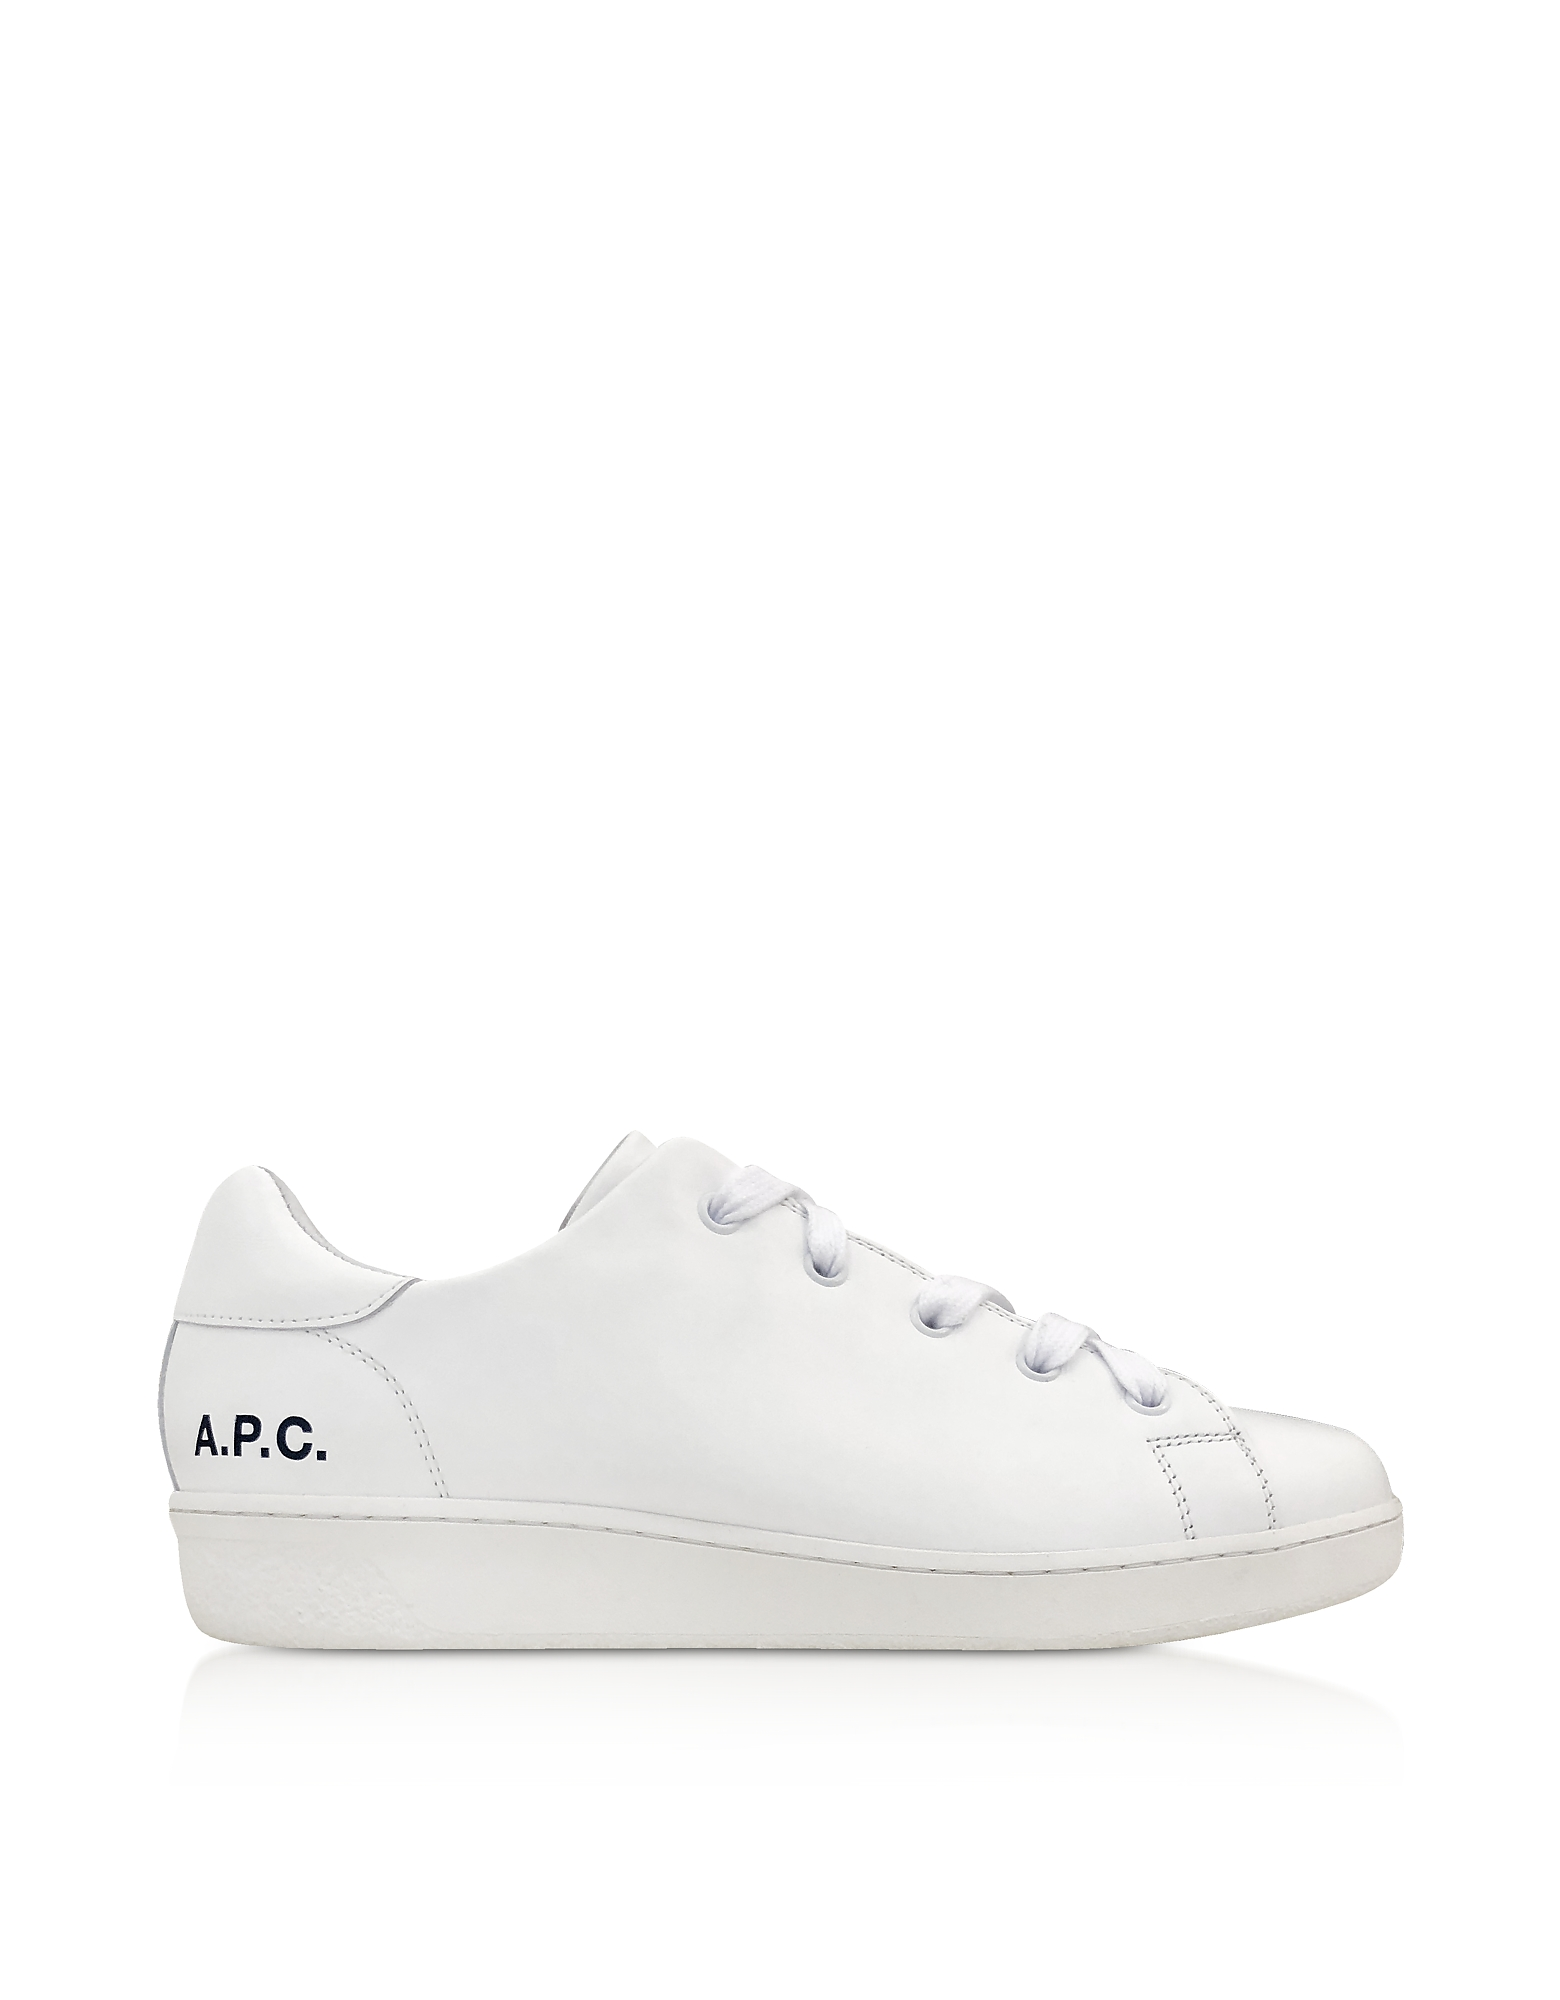 A.P.C. Shoes, White Leather Minimal Tennis Women's Sneakers